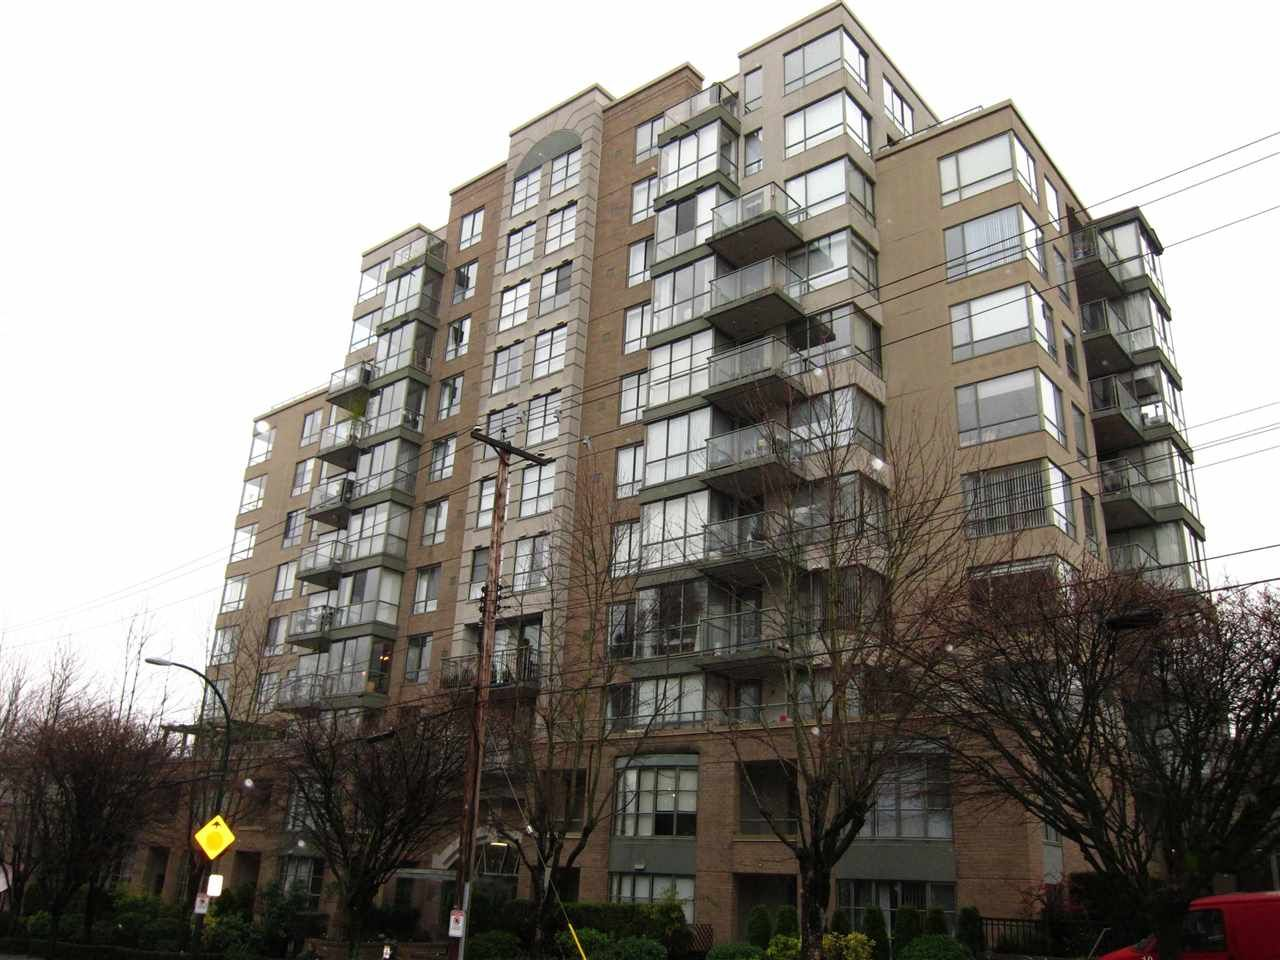 """Main Photo: 403 2288 PINE Street in Vancouver: Fairview VW Condo for sale in """"The Fairview"""" (Vancouver West)  : MLS®# R2546648"""